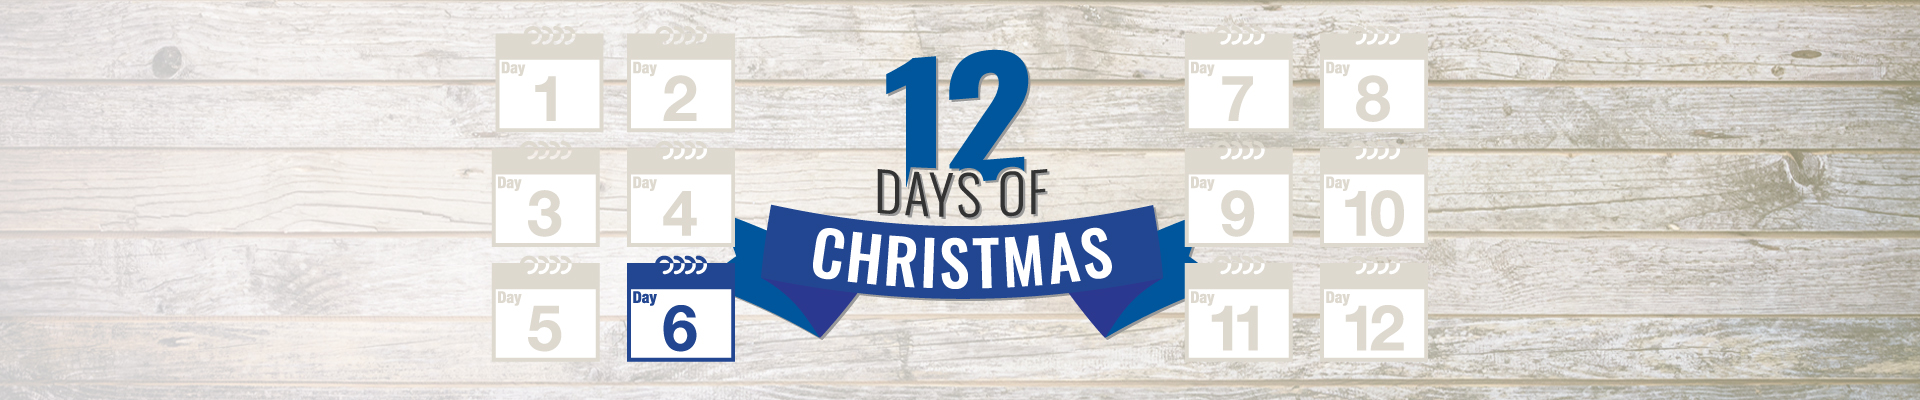 12 Days of Christmas Deals - 2017-12-18